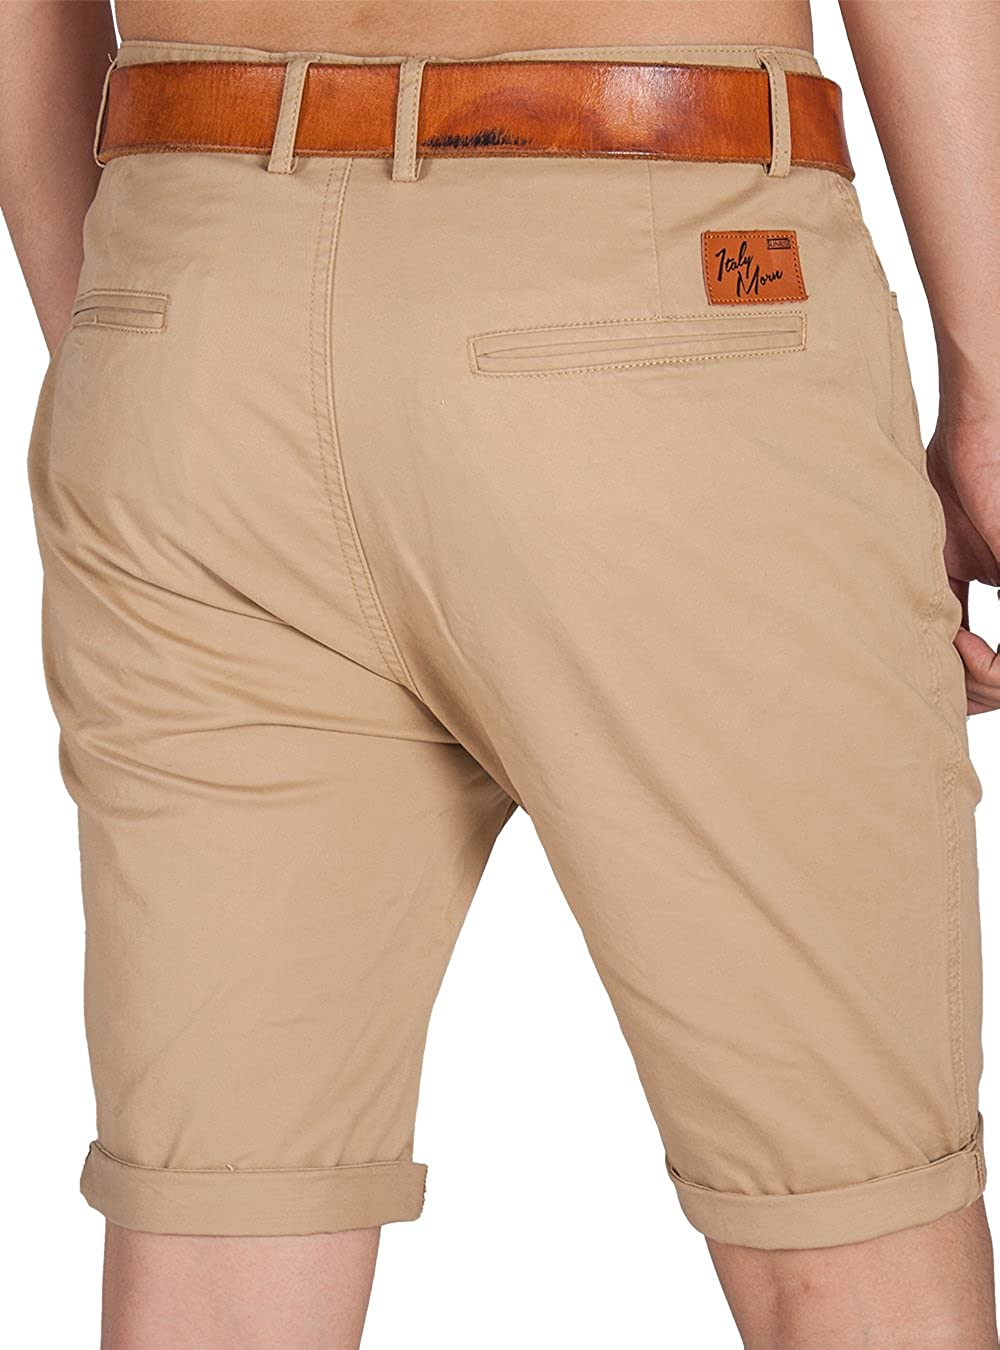 ITALY MORN Homme Casual Flat Front Chino Shorts af3dae76cbc